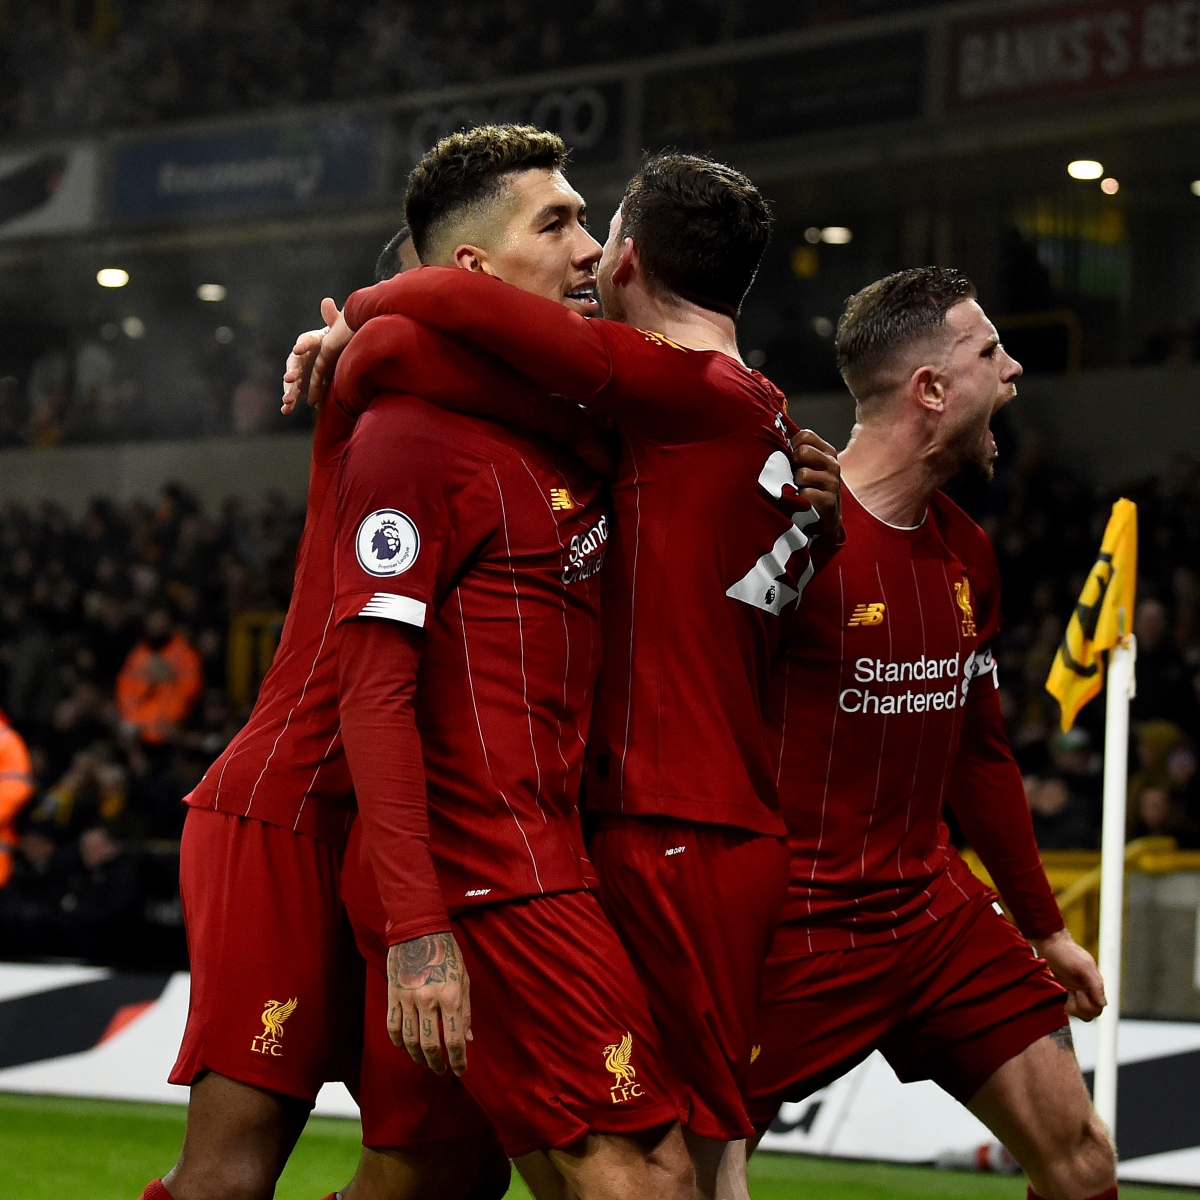 Premier League: Up the Reds! Liverpool extend winning streak to 14 matches, down Wolves 2-1